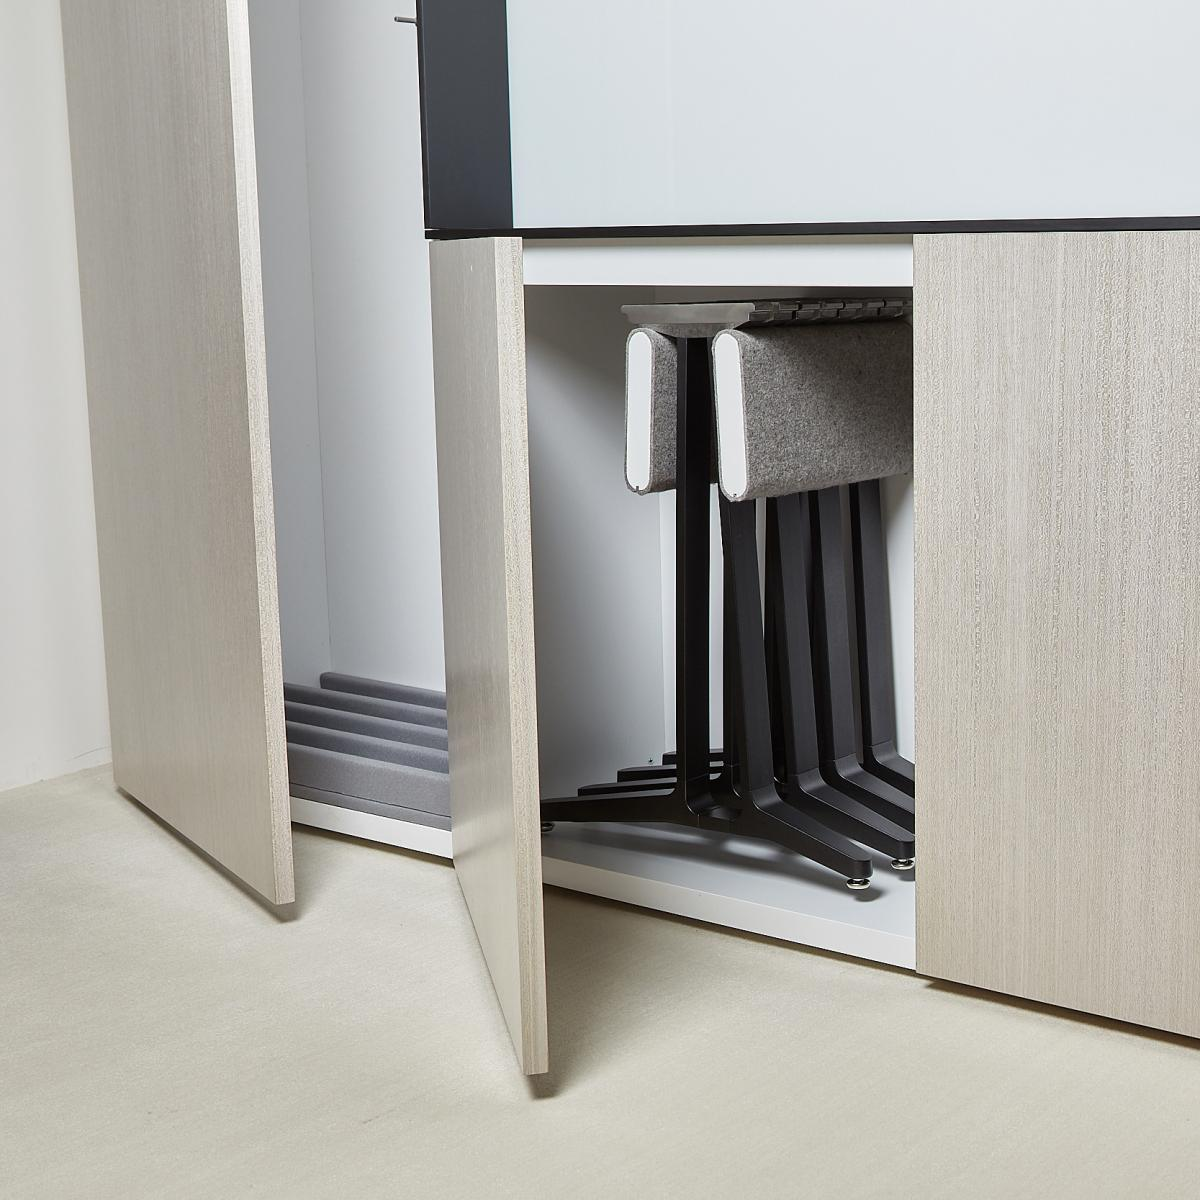 SkillSet table and storage can be customized to perfectly meets the needs of your space.